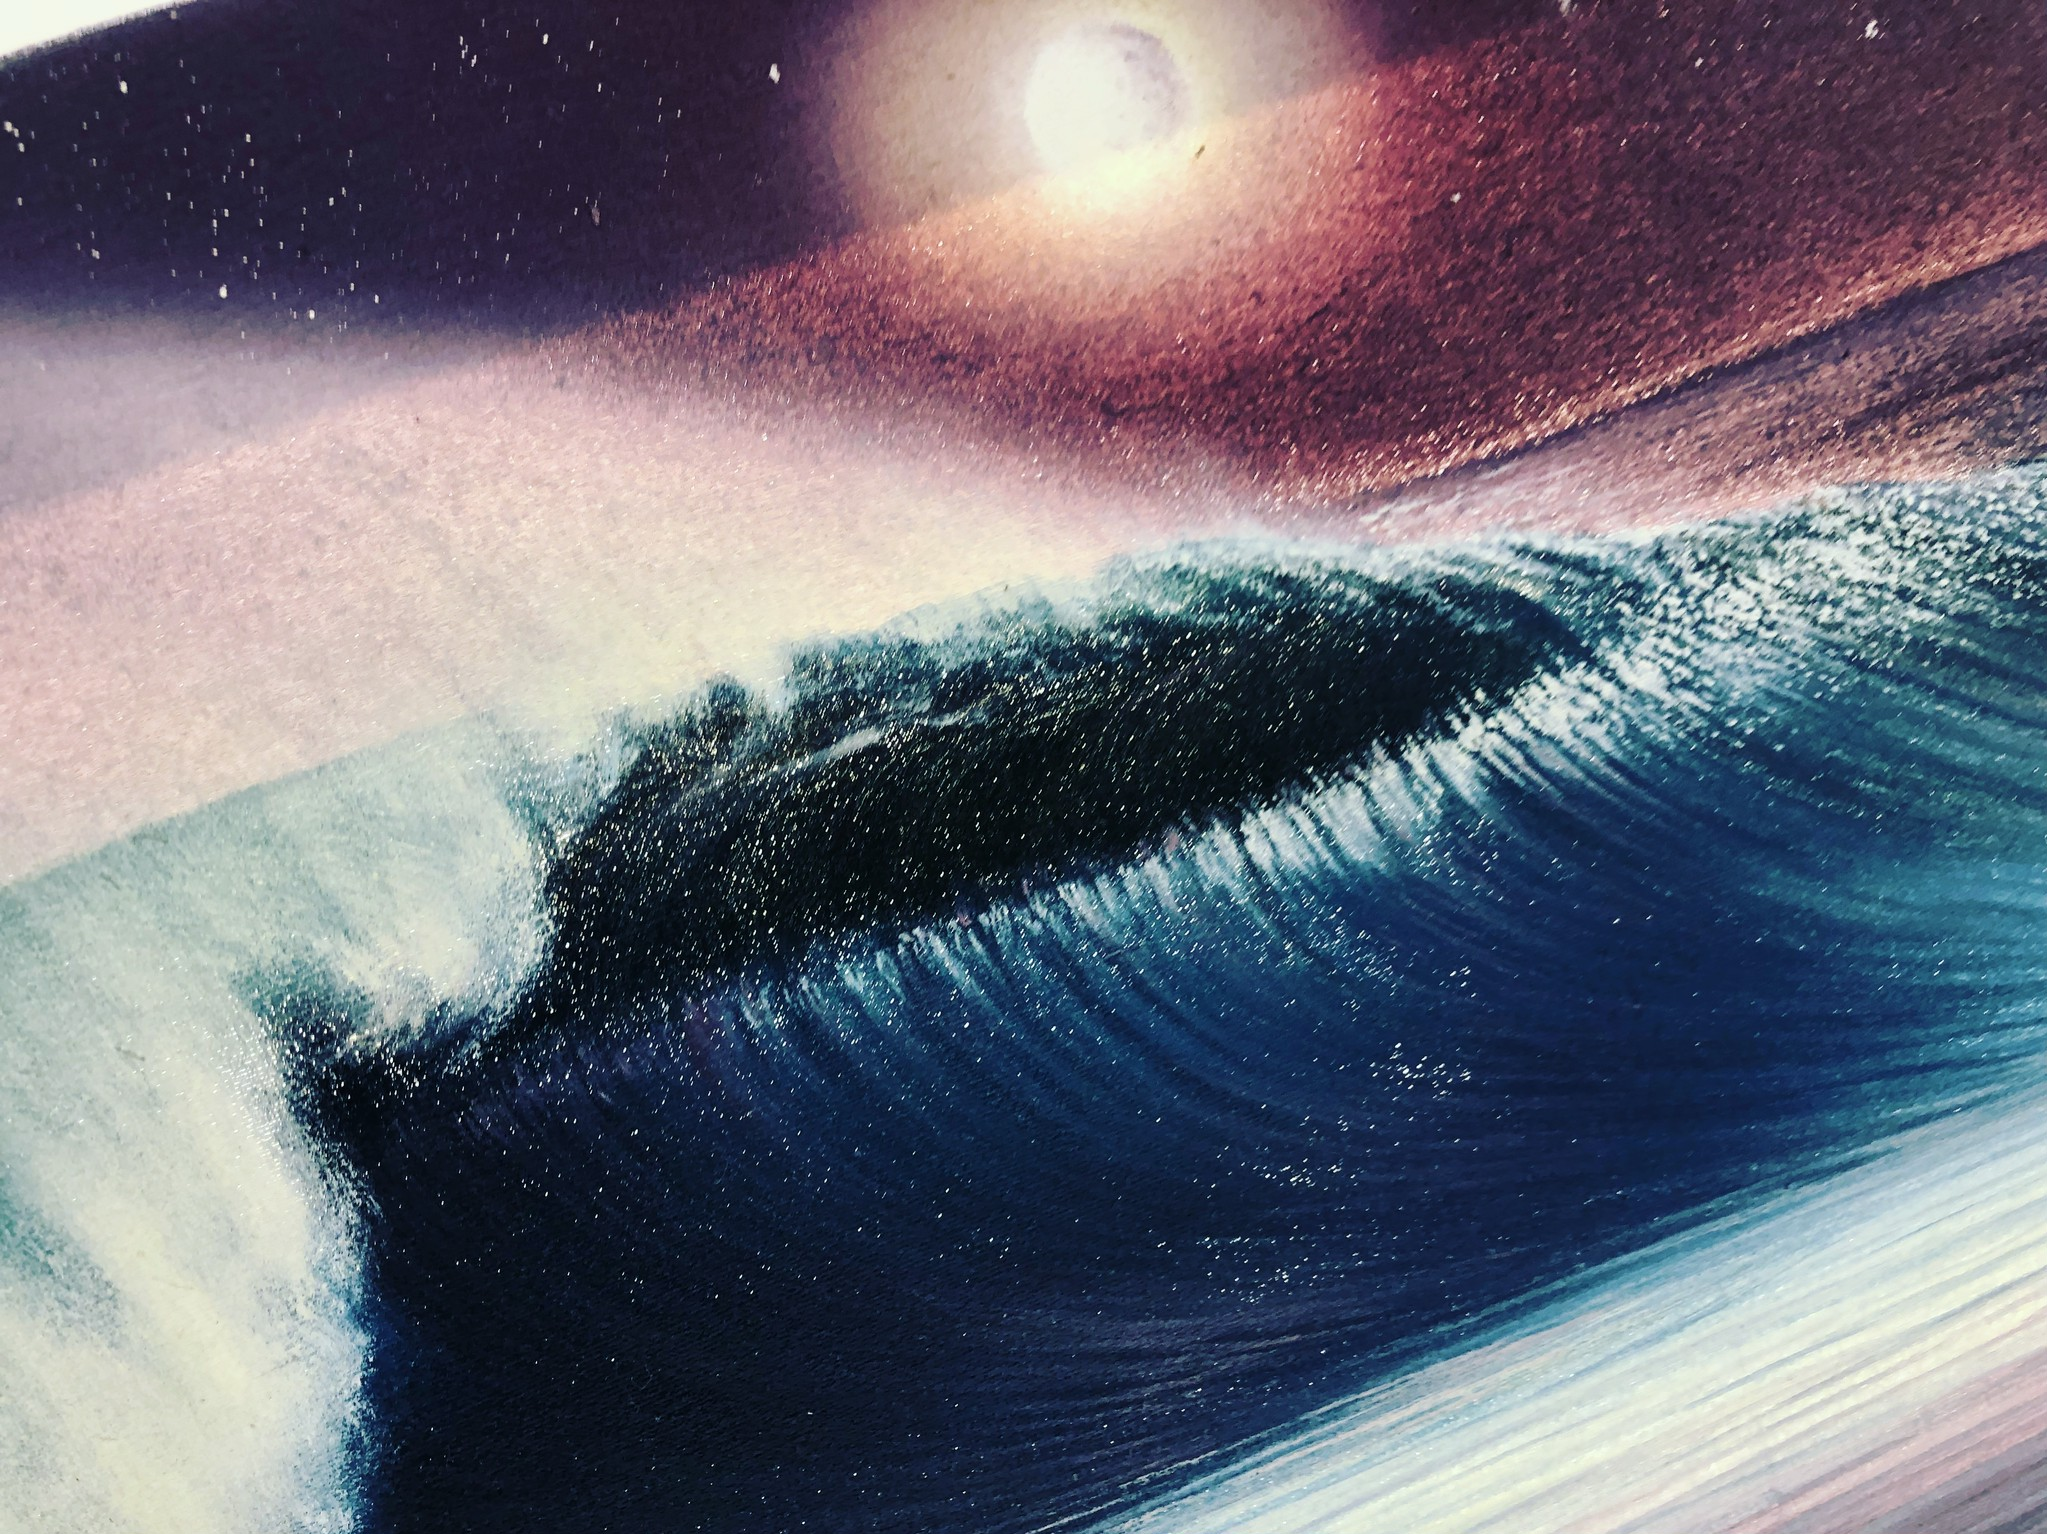 Goes Windy Dream Wave Artの魅力。